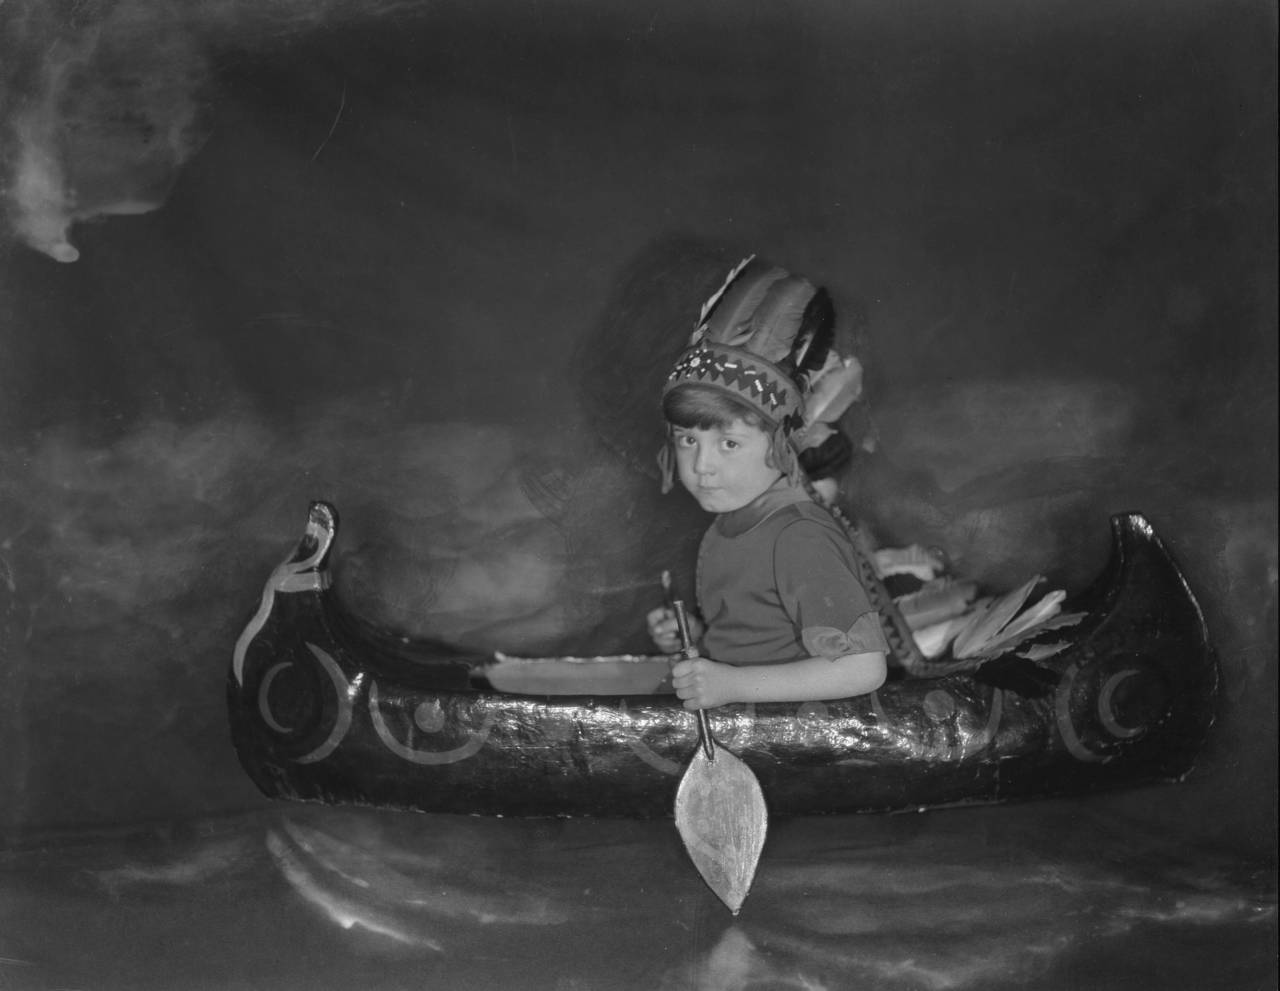 circa 1925: Christopher Robin Milne, immortalized with his toy bear Winnie-the-Pooh in his father A A Milne's children's classics, paddling his toy canoe, dressed as a Native American.